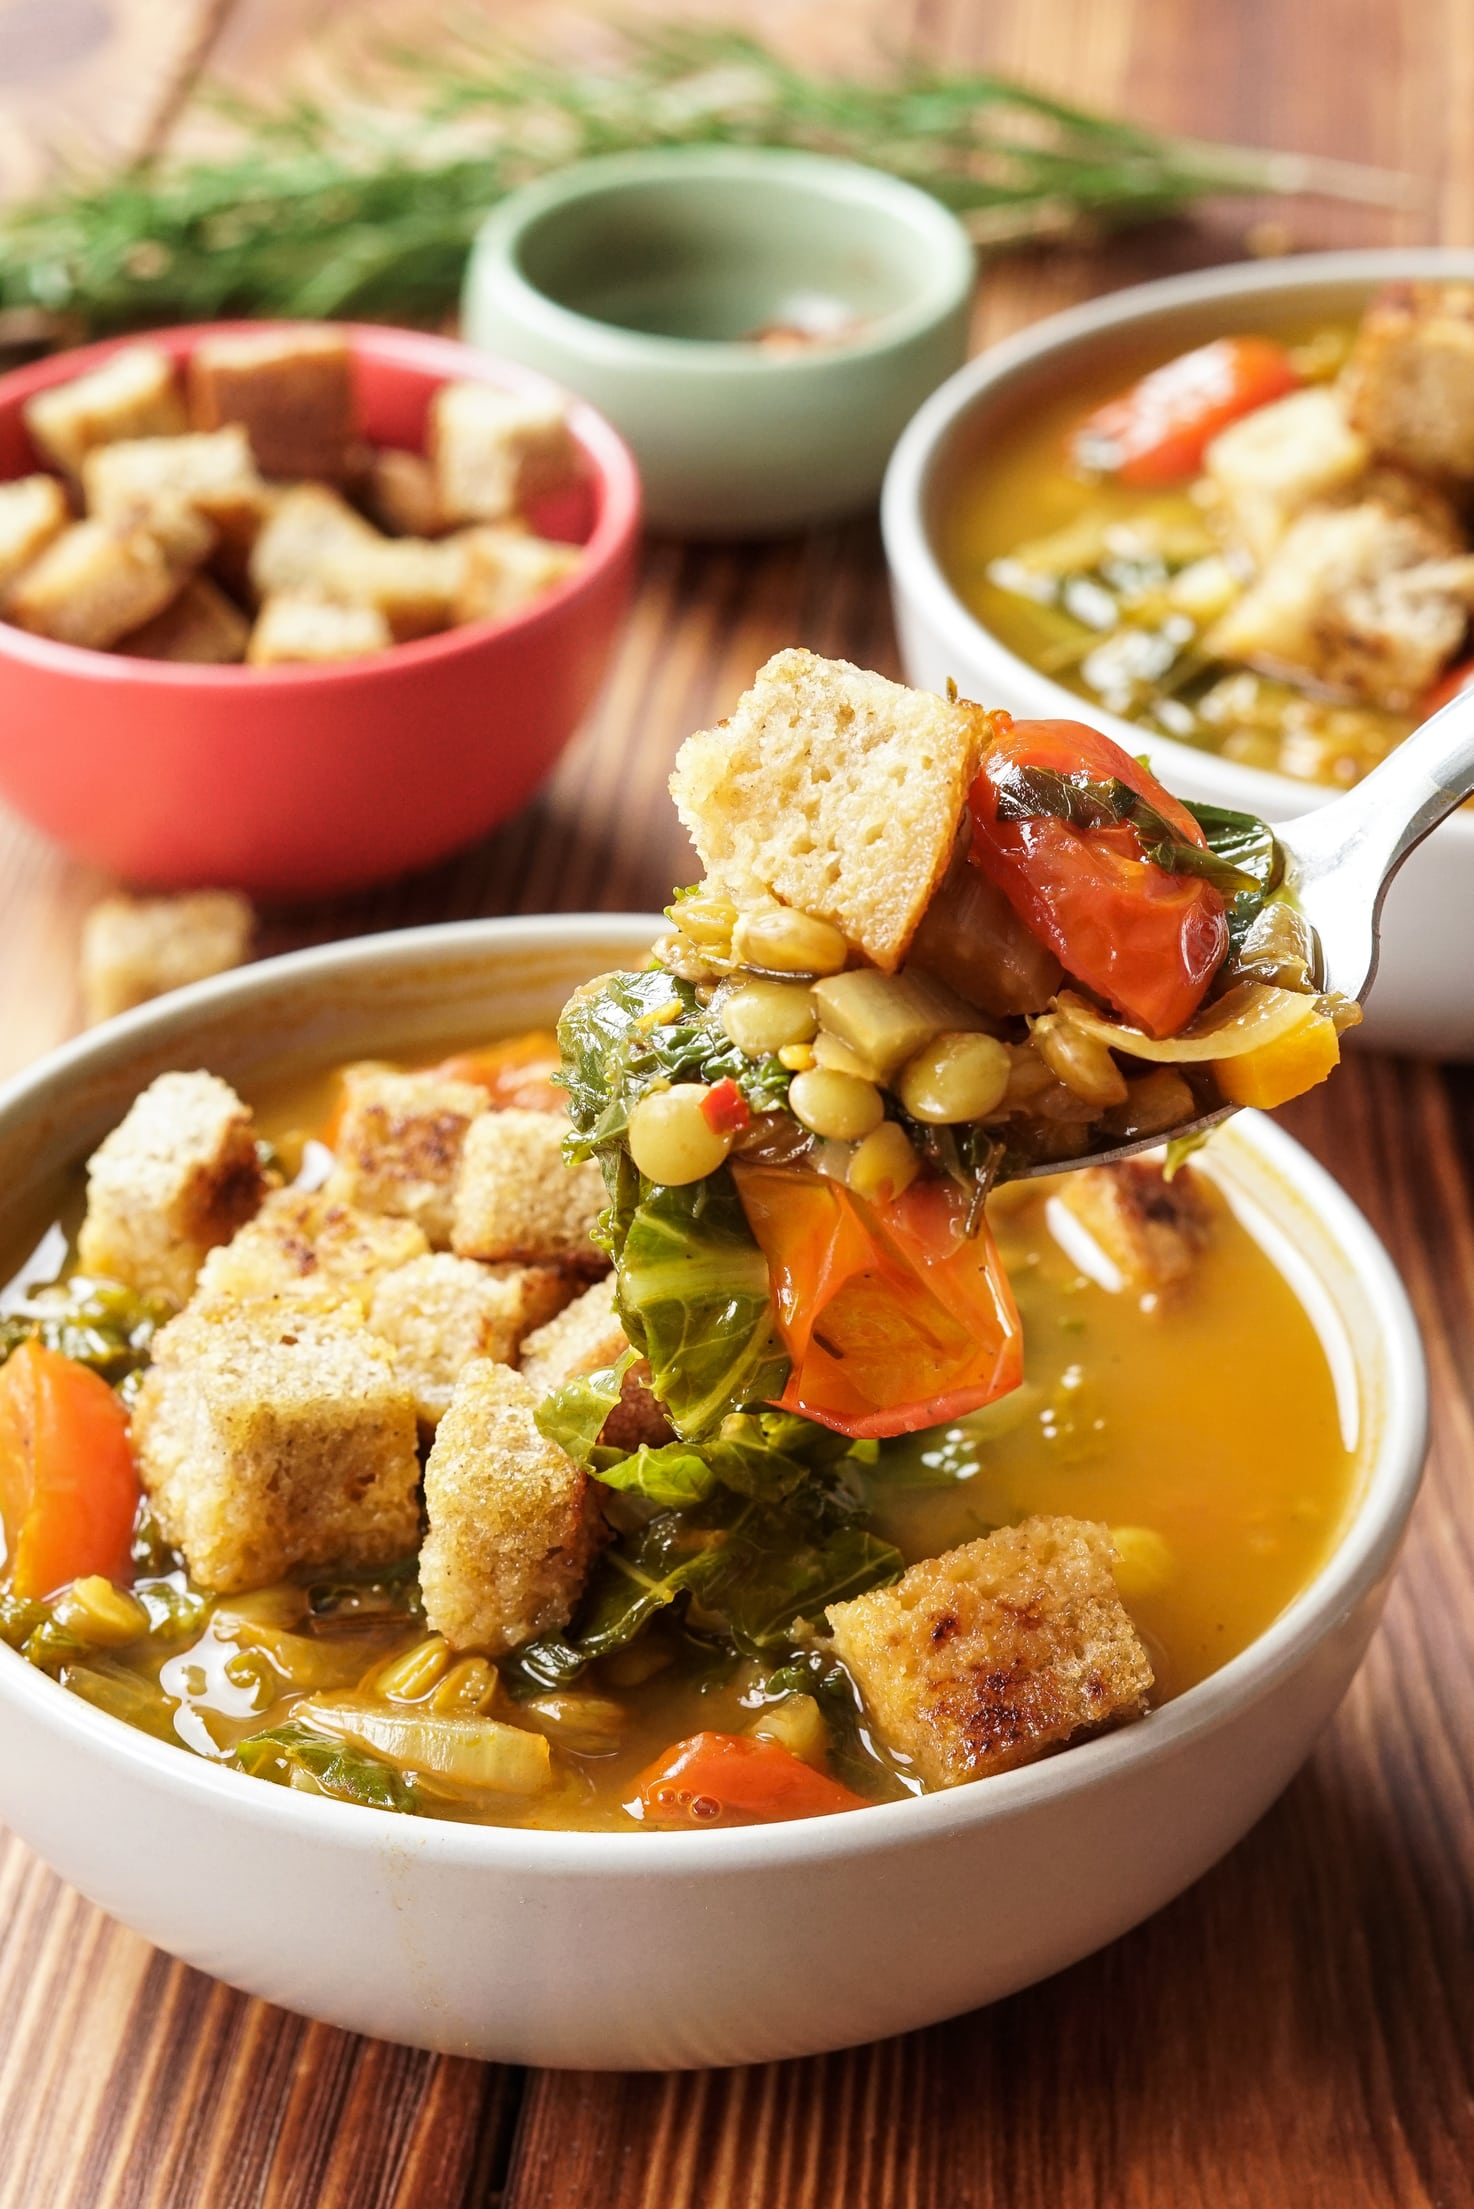 Two bowls of lentil and vegetable soup are on a wooden table. Behind them is a bowl of croutons and a smaller bowl of spices. Behind them is a sprig of rosemary. In the foreground a spoonful of lentil vegetable soup is held up   Hurry The Food Up